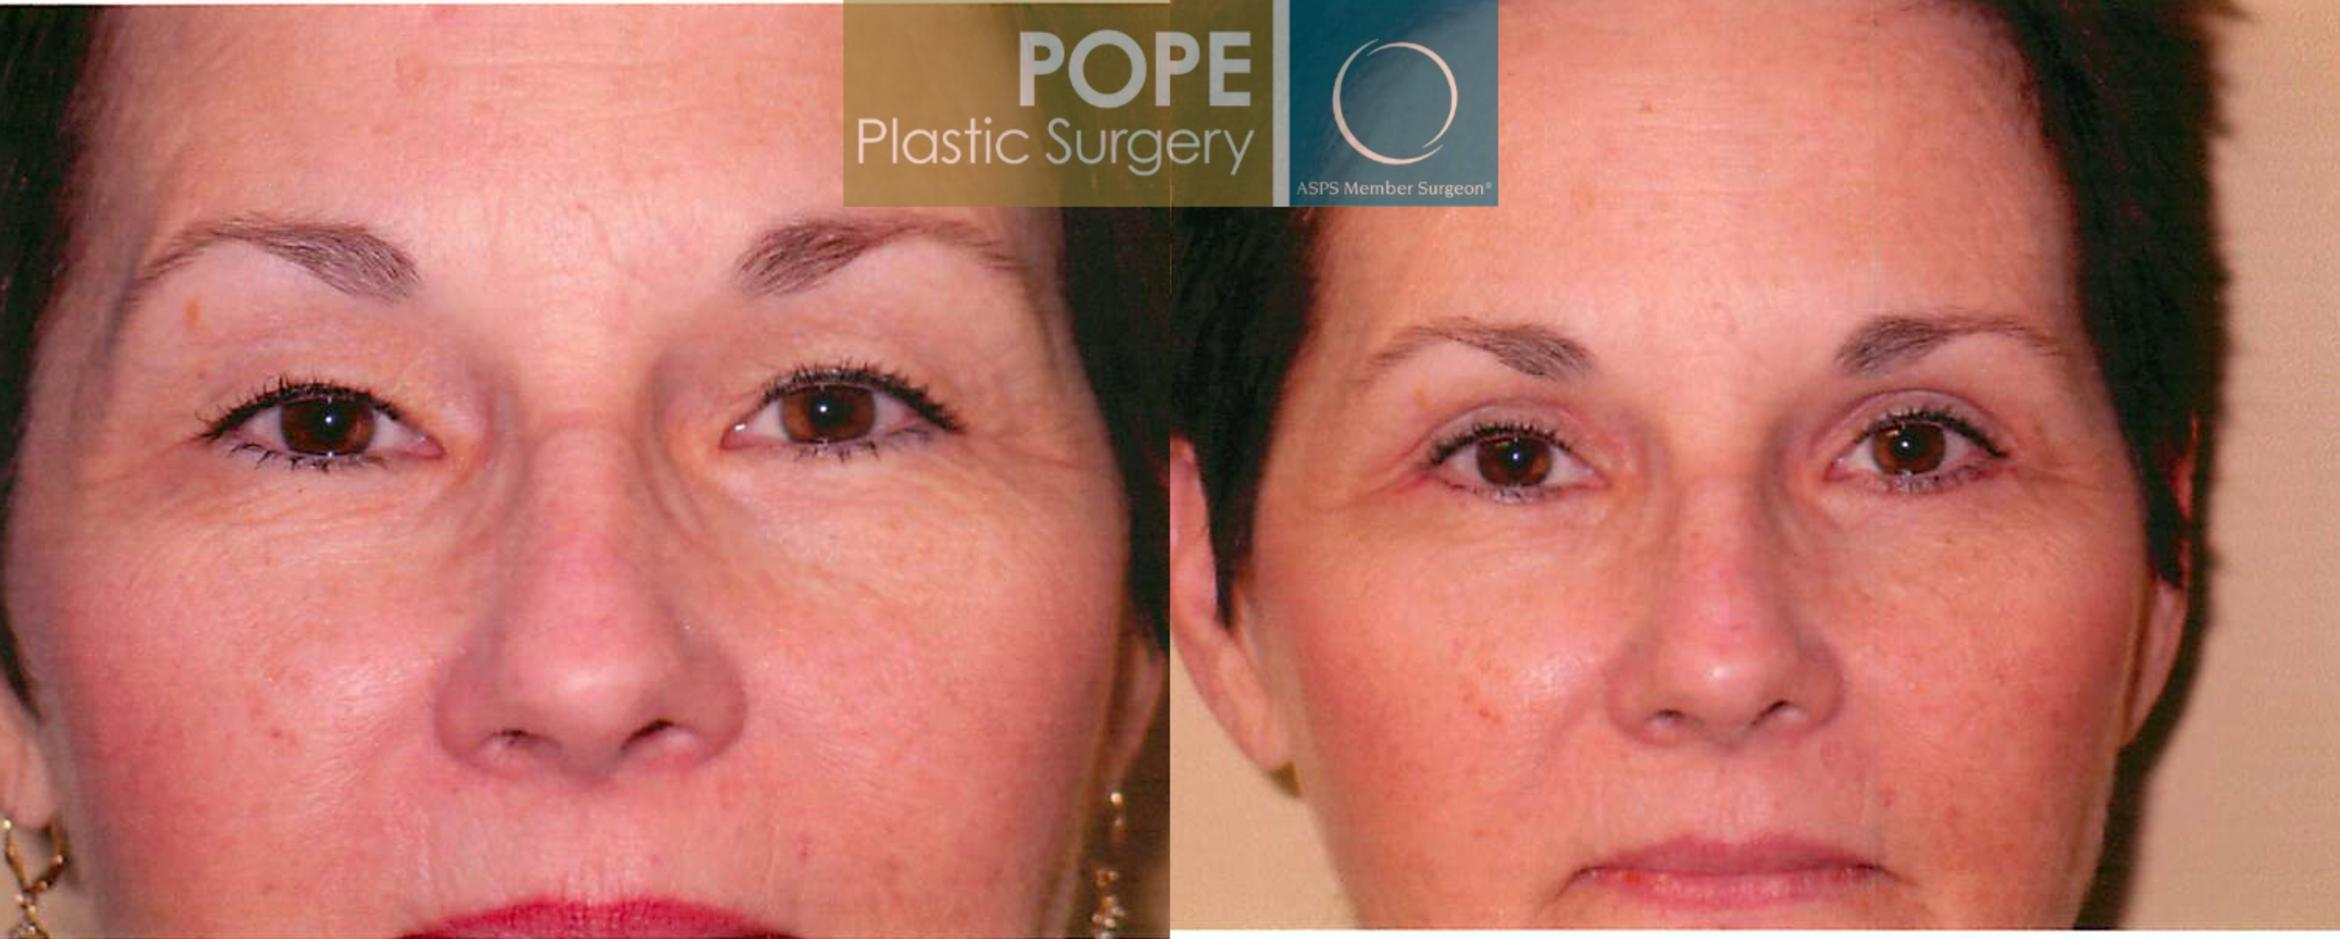 Eyelid Surgery Case 106 Before & After View #2 | Orlando, FL | Pope Plastic Surgery